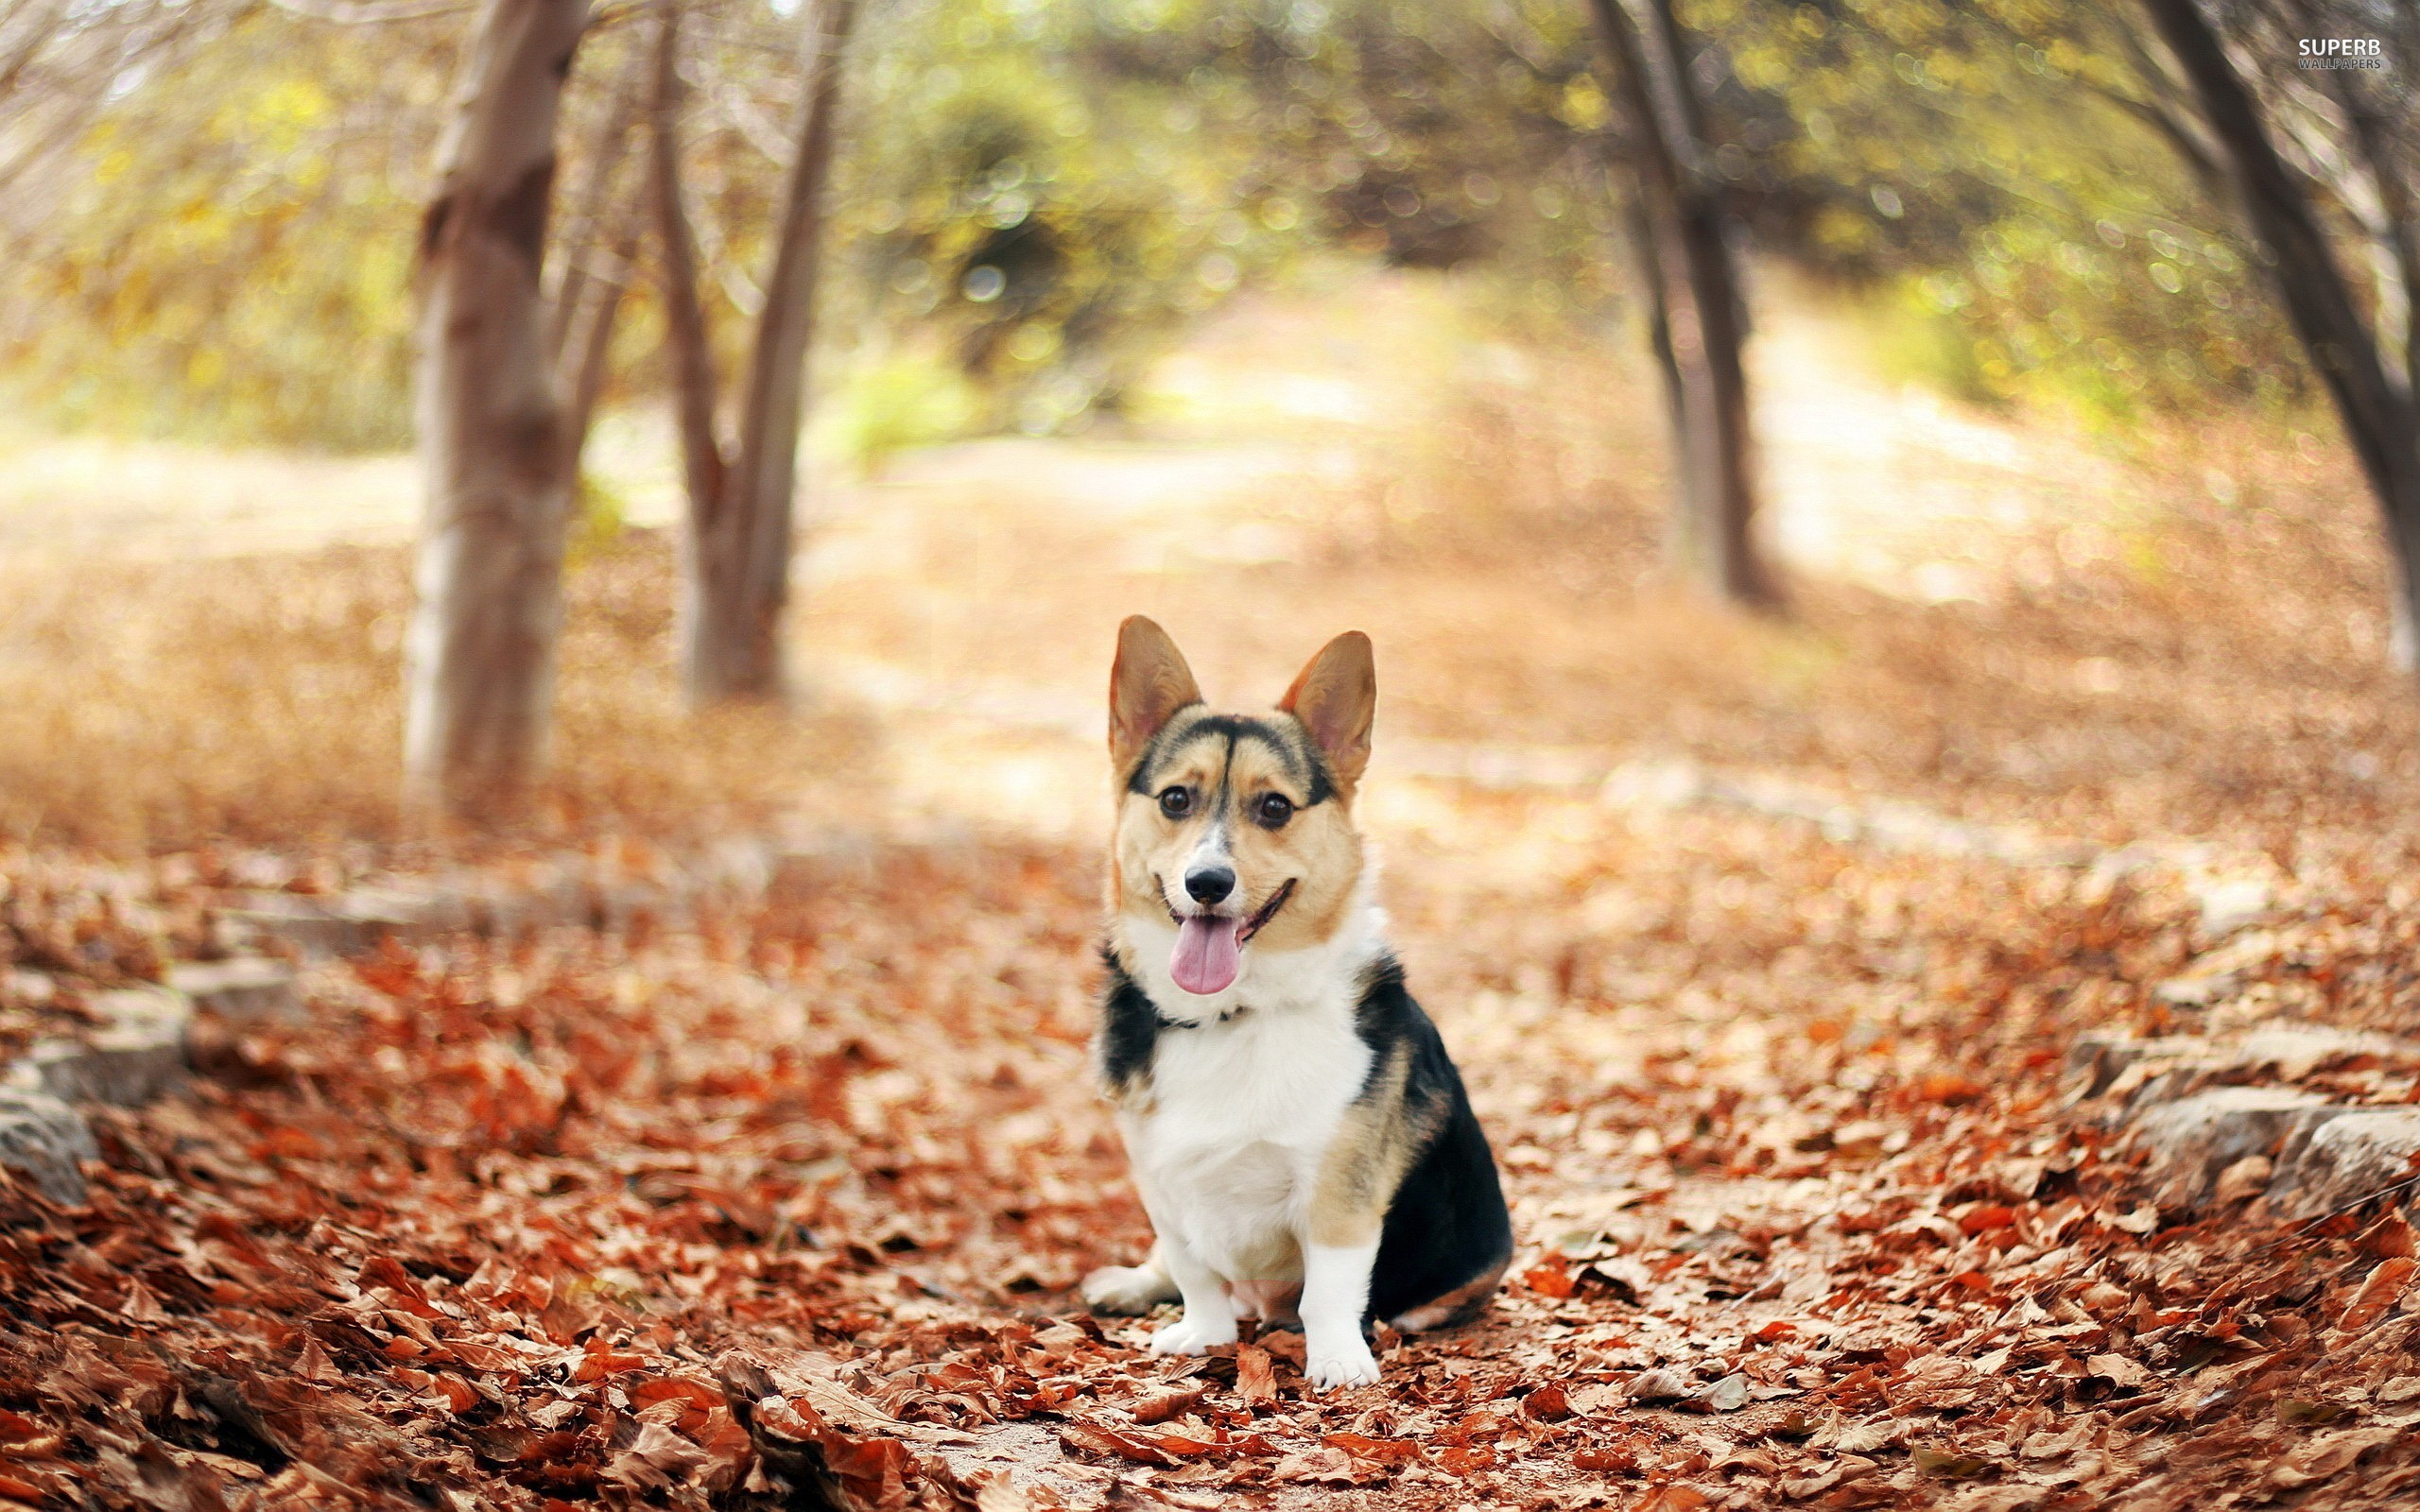 Cute-Welsh-Corgi-Puppy-Images-ihb-x-px-KB-Animal-x-1920x1080-bla-wallpaper-wp3804273